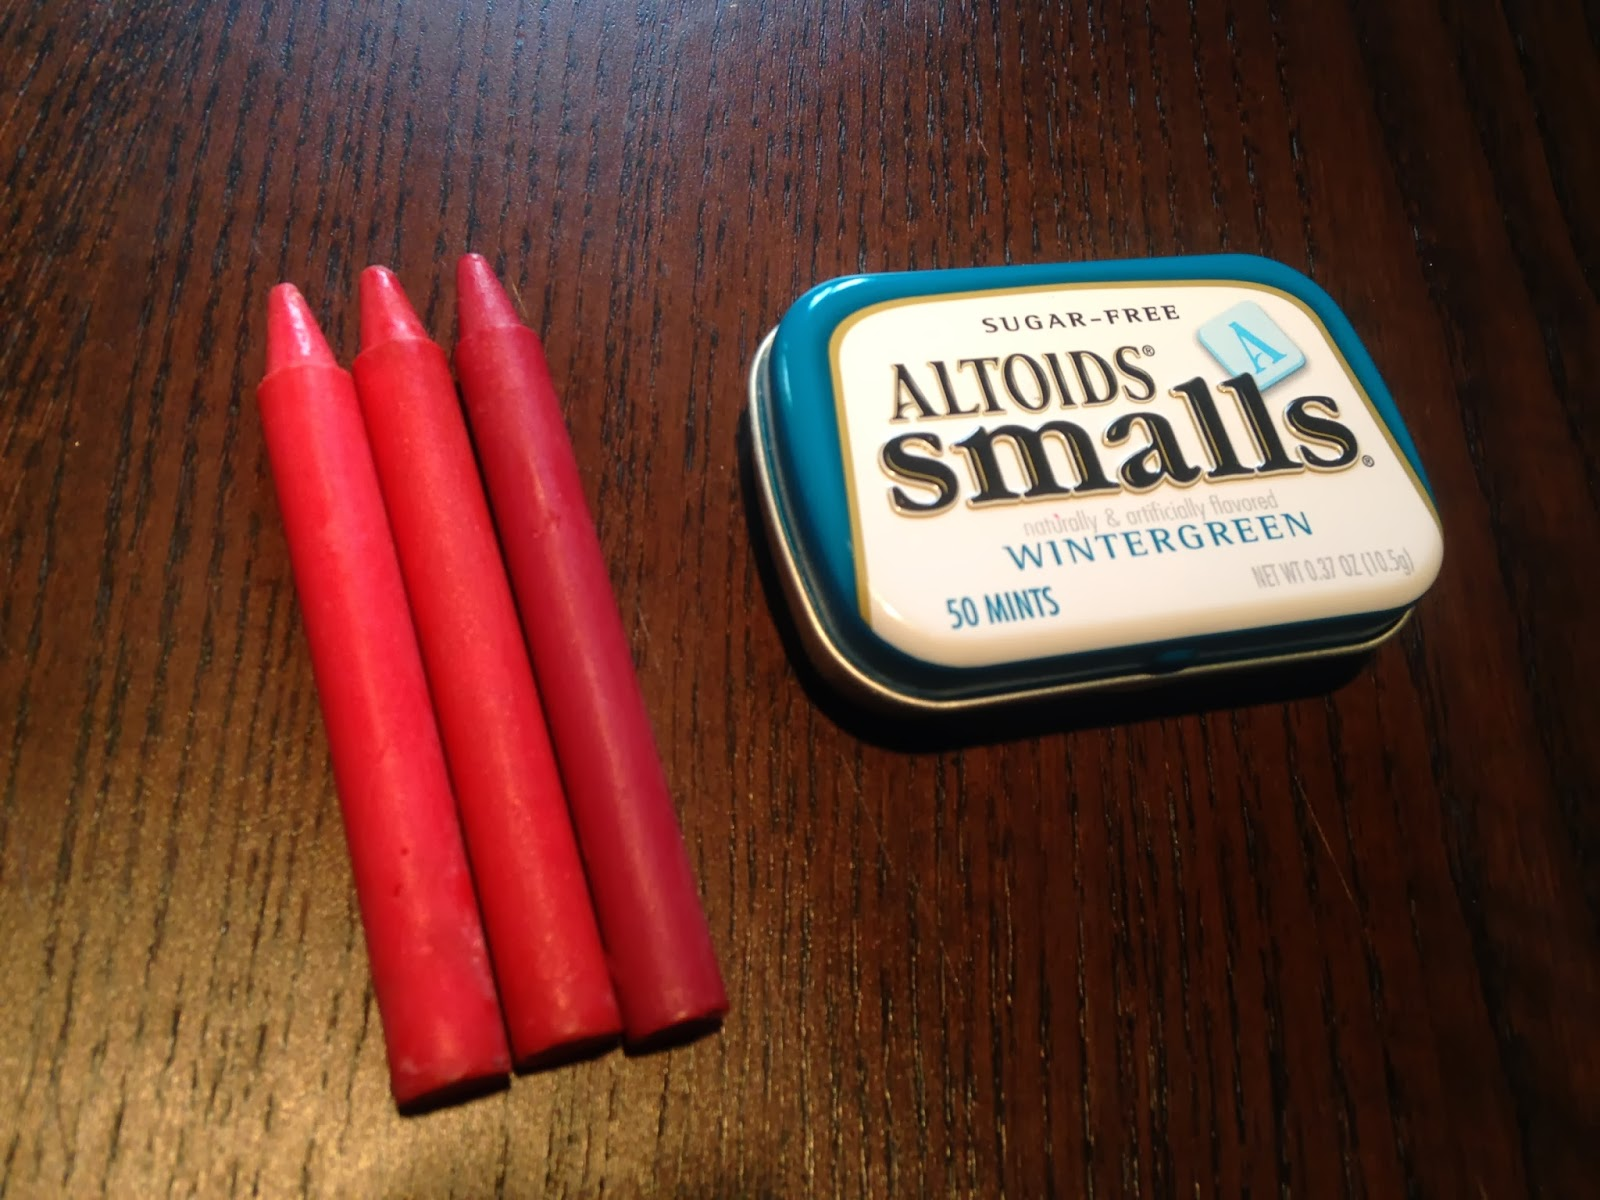 Making christmas ornaments with crayons - When I First Saw This Post By Ohsoprettythediaries I Was Both Skeptical But Intrigued Can You Really Make Lipstick Out Of Crayons